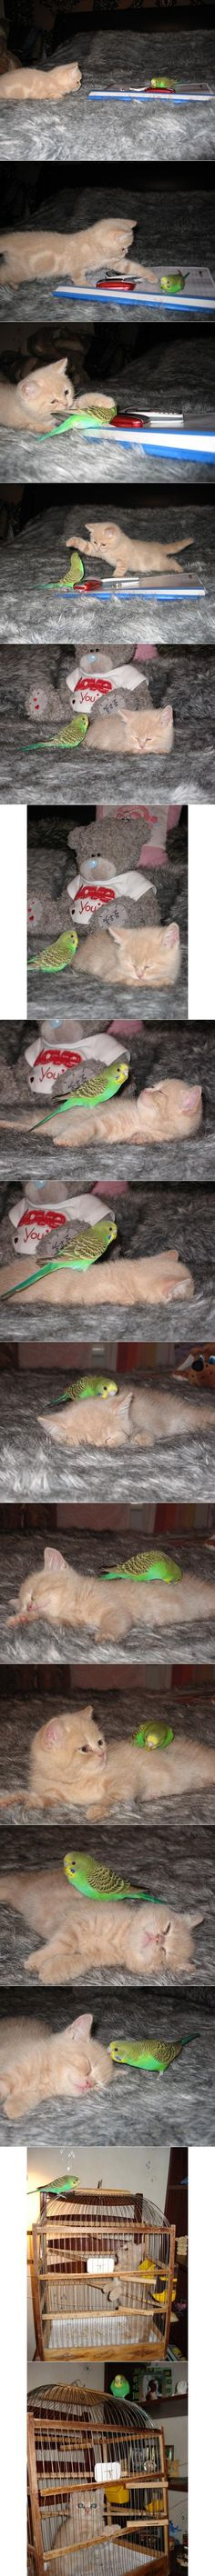 A cat bird love story!  So adorable!